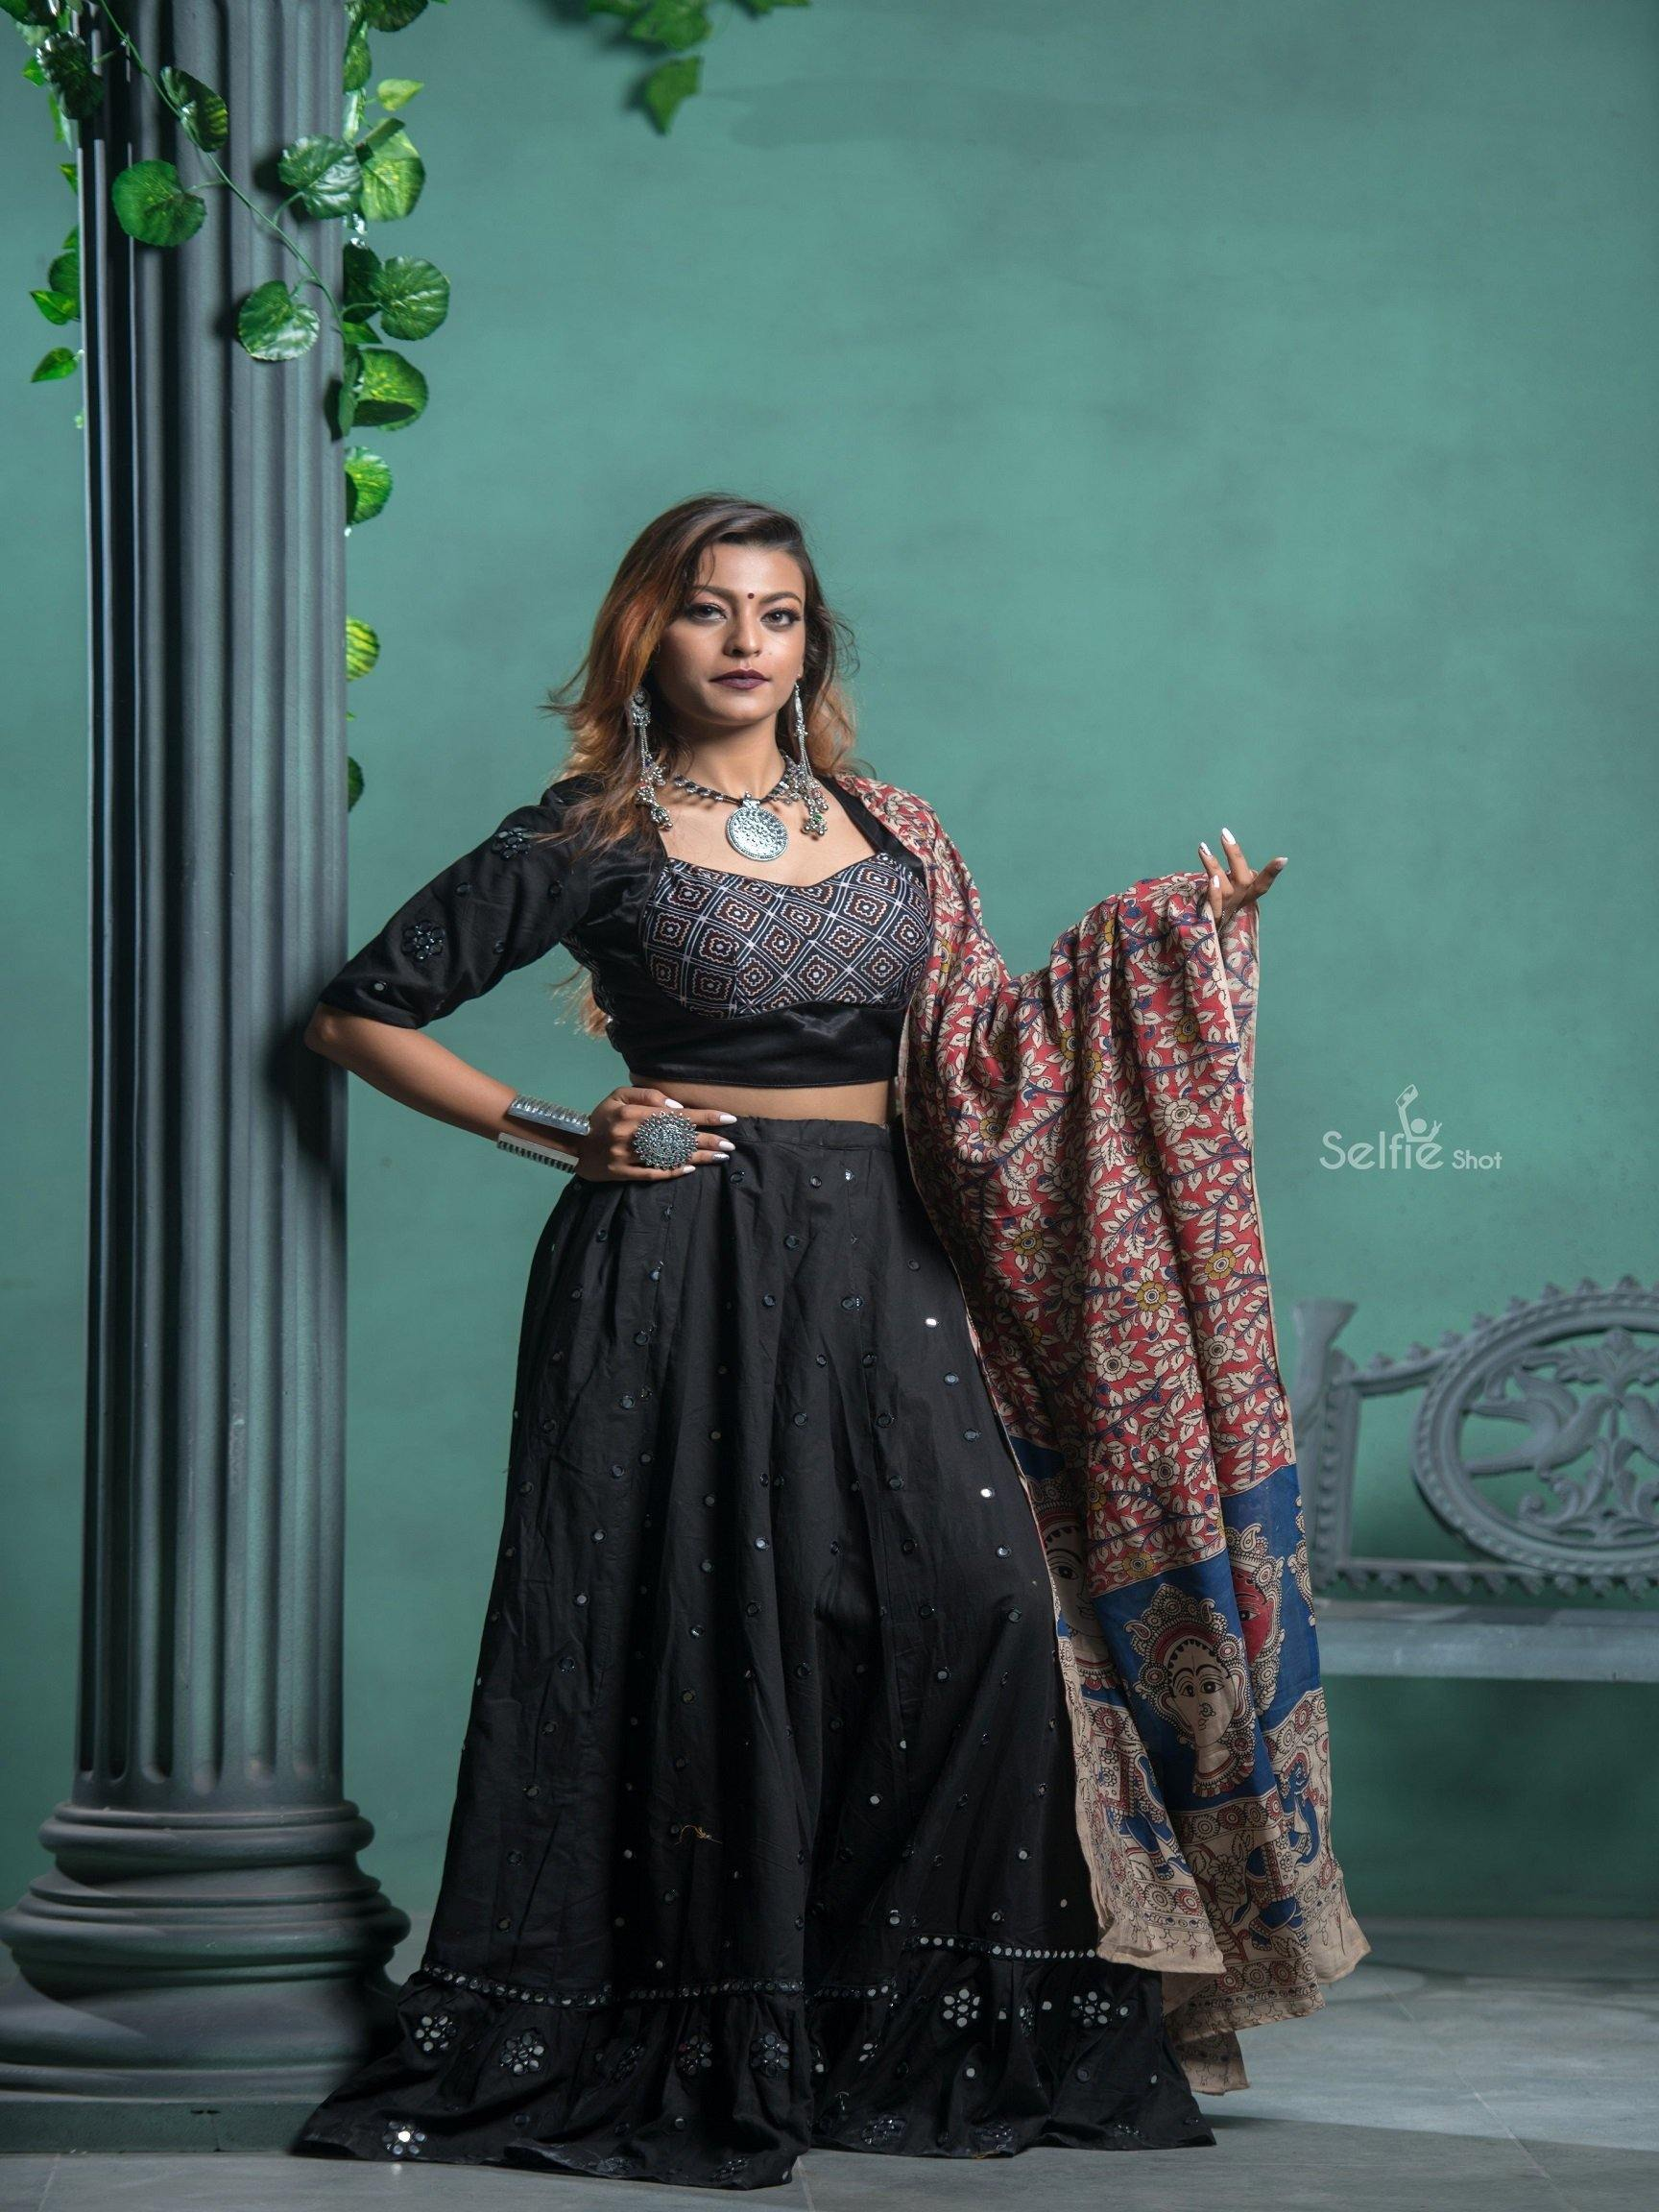 Black Chaniya Choli with Silver Embroidery